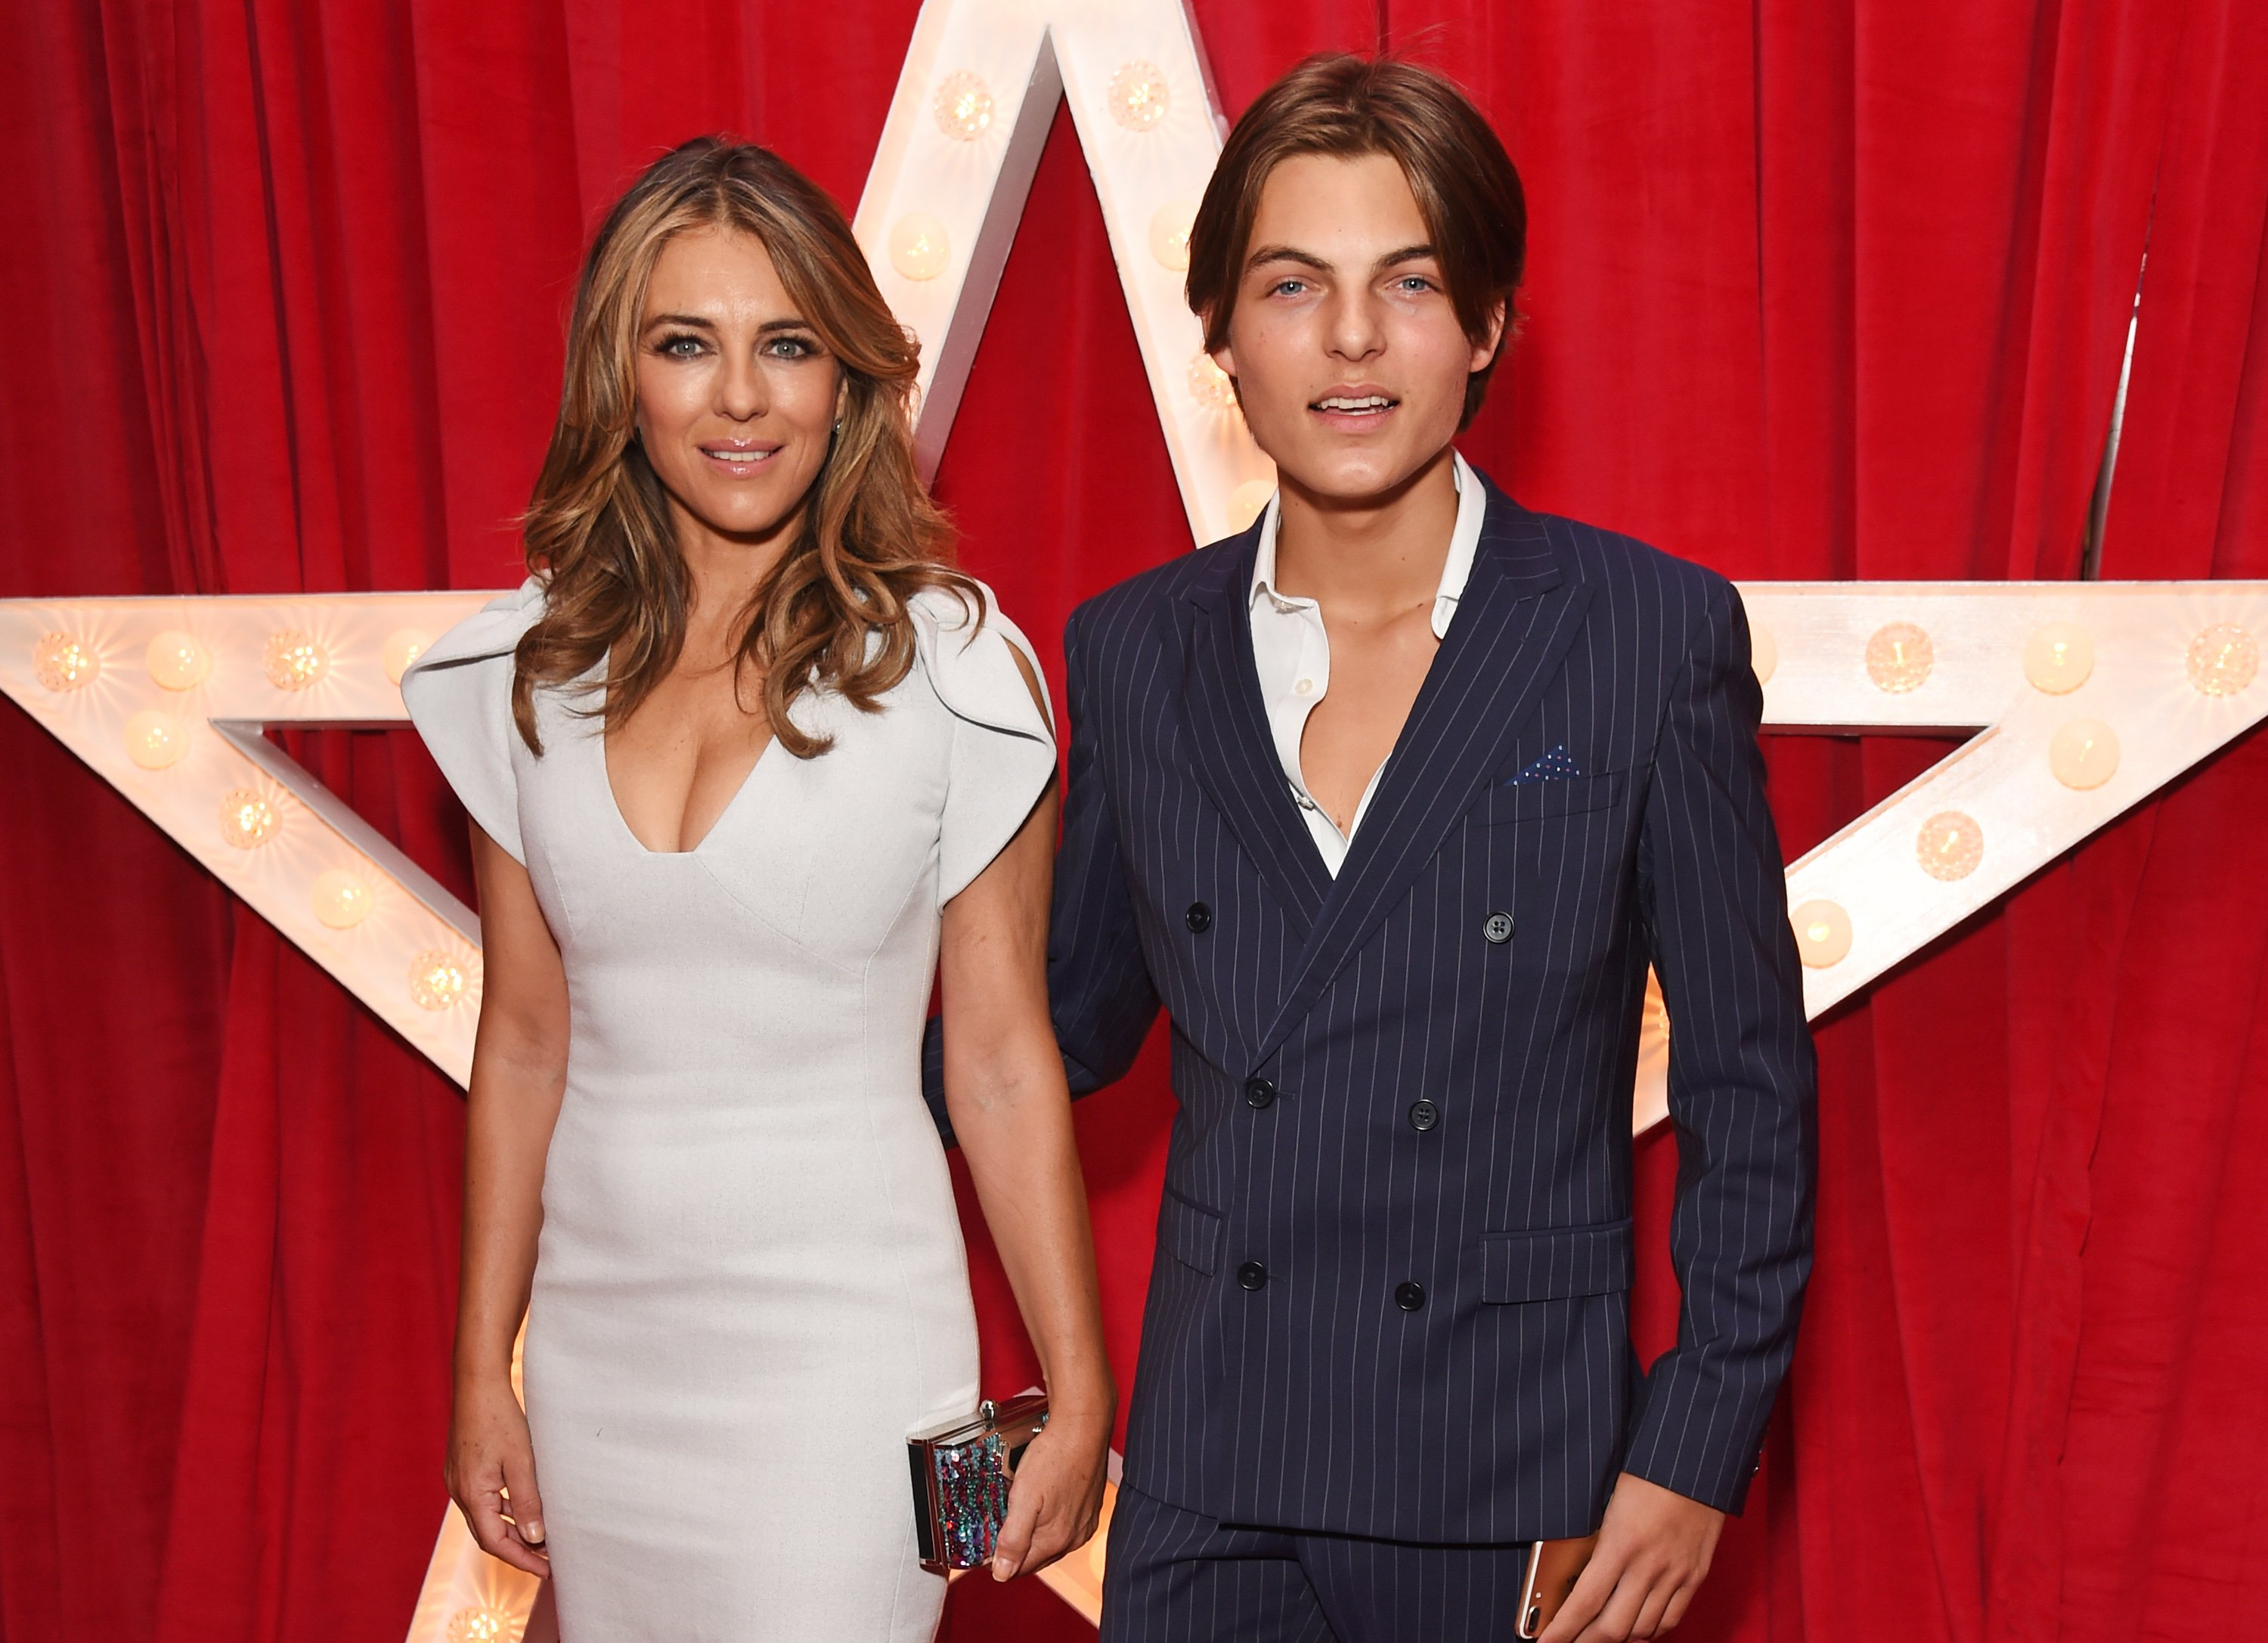 """Elizabeth Hurley and son Damian Hurley attend the World Premiere of """"Paddington 2"""" at Odeon Leicester Square on November 5, 2017 in London, England   Source: Getty Images"""